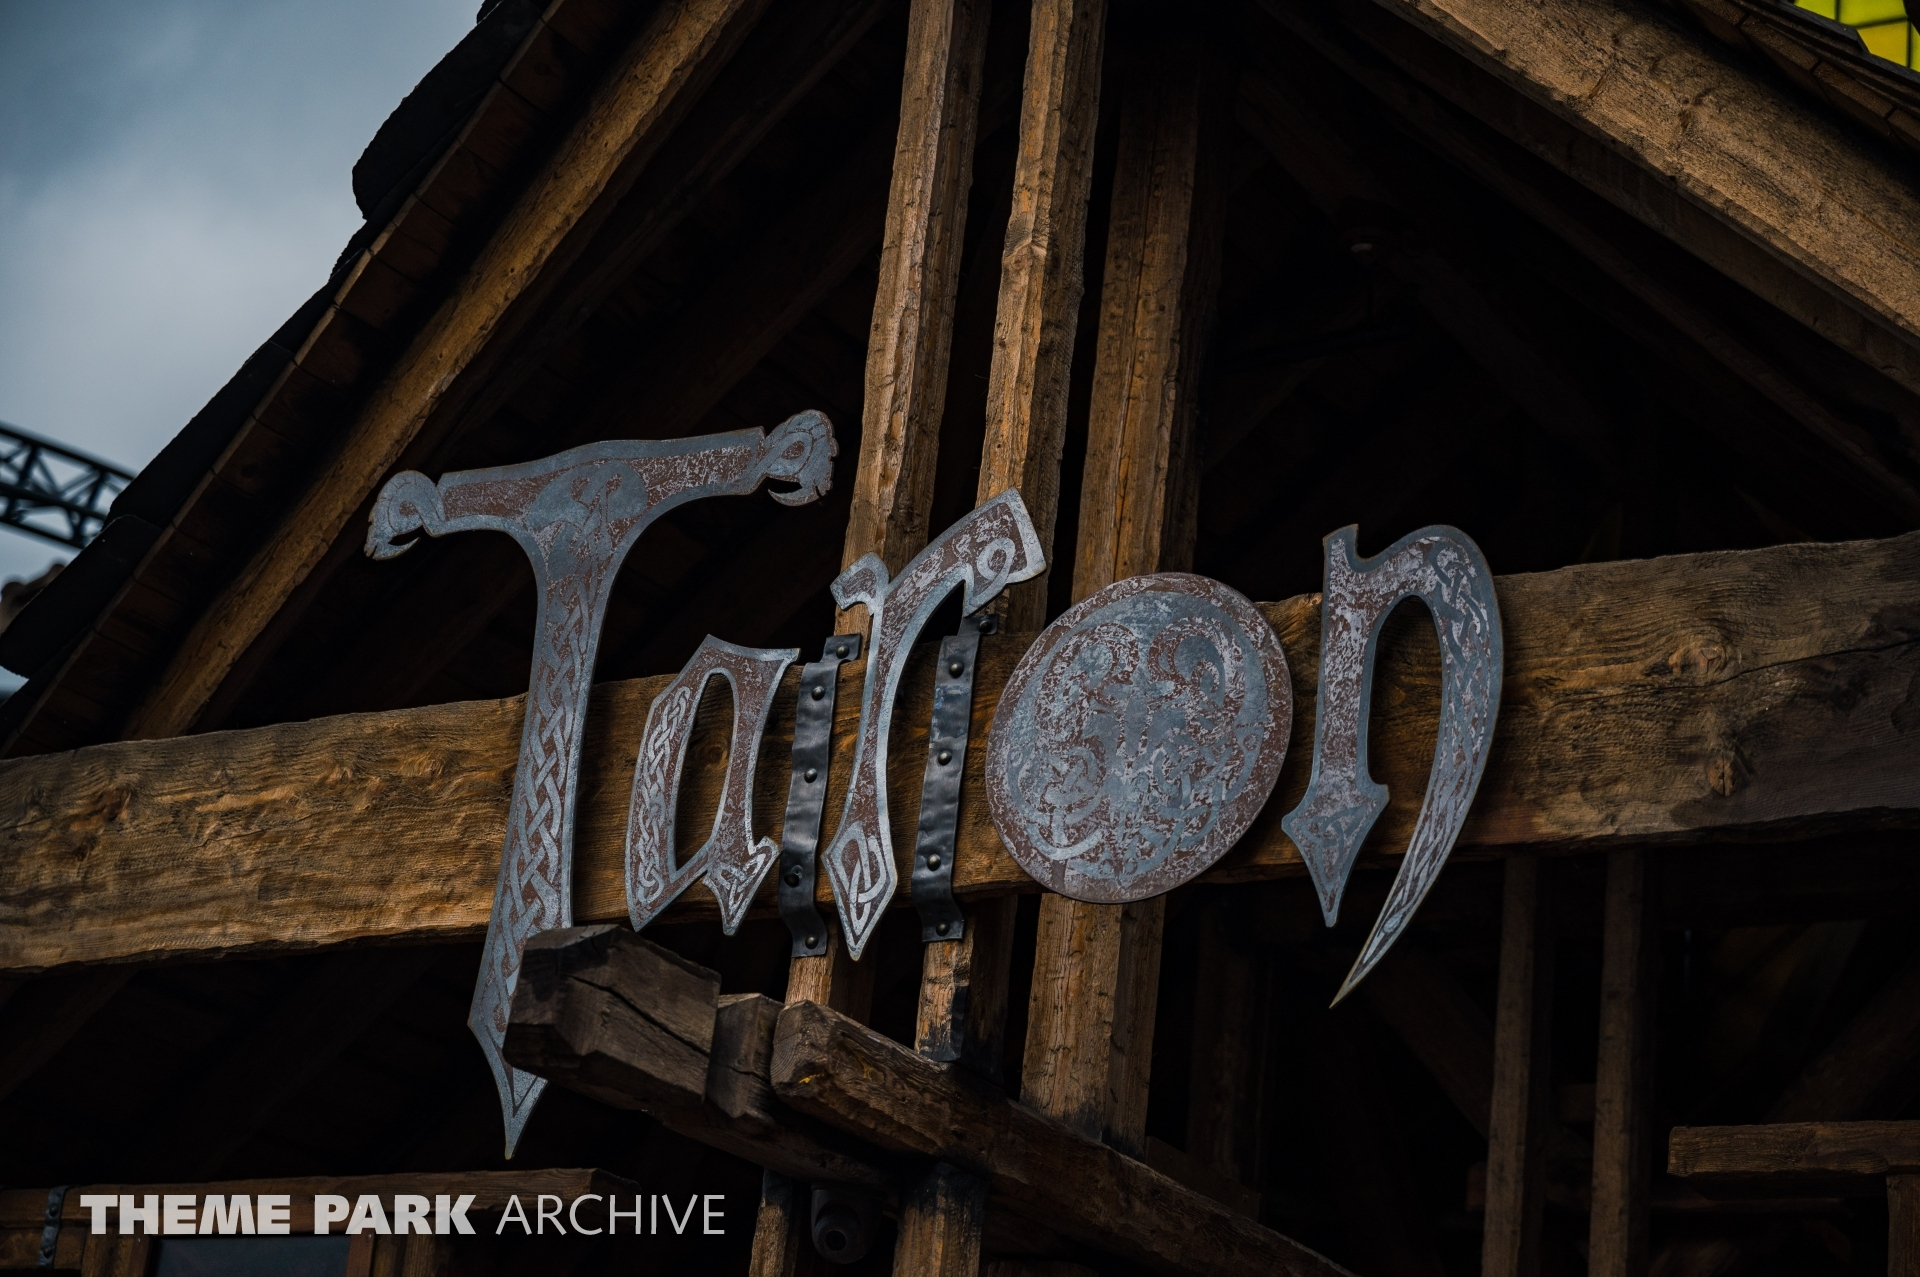 Taron at Phantasialand